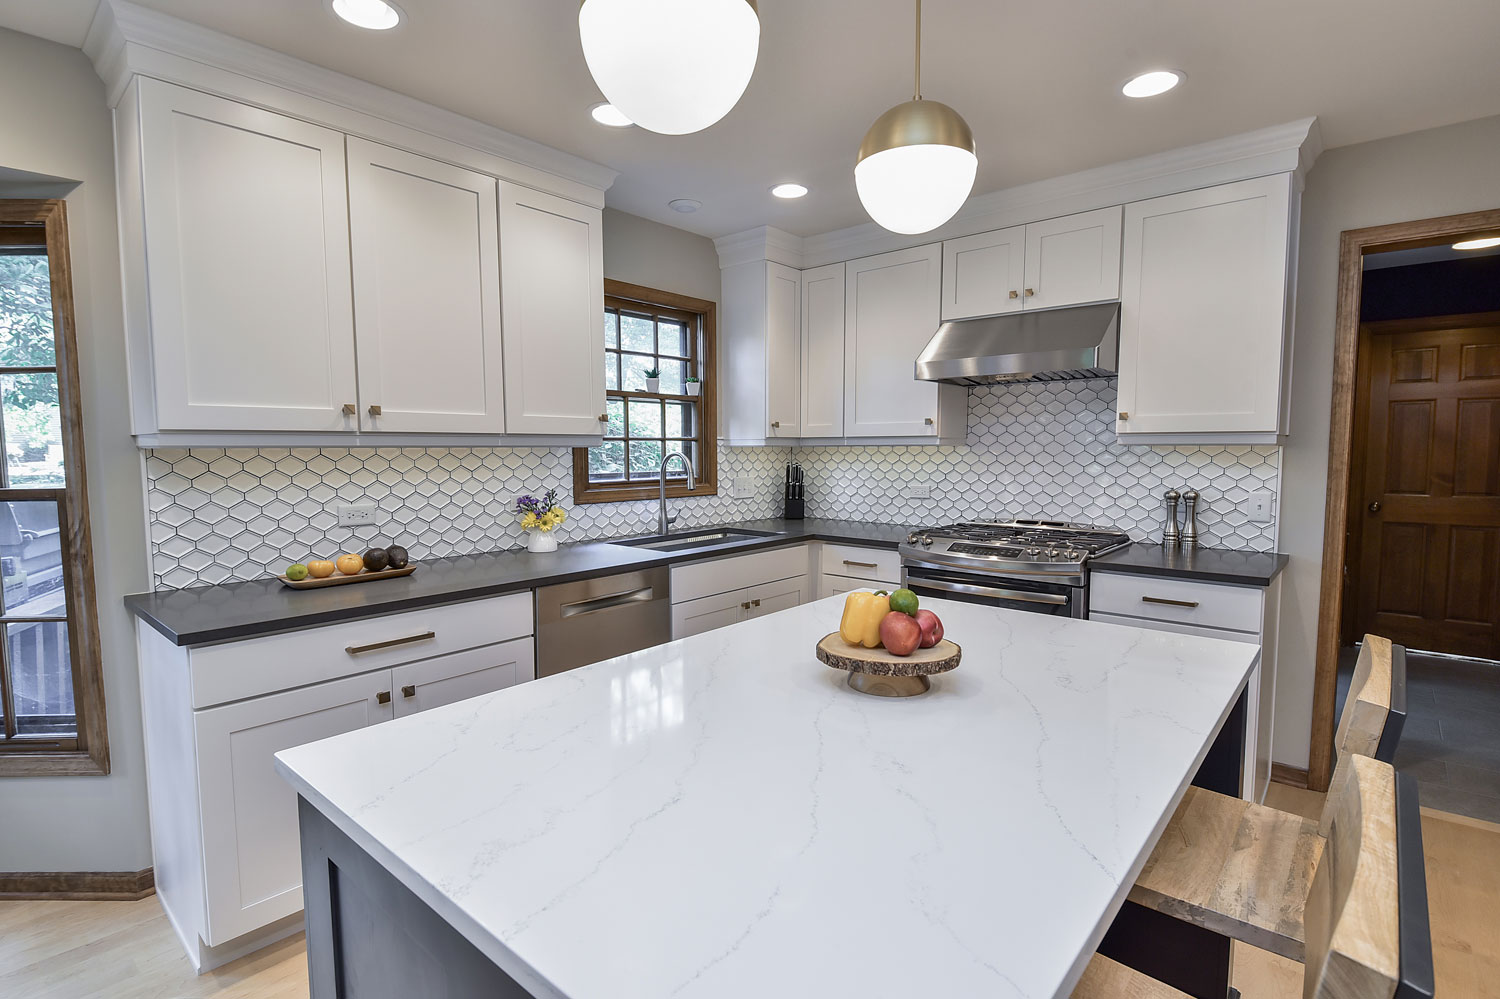 Justin Carina S Kitchen Remodel Pictures Home Remodeling